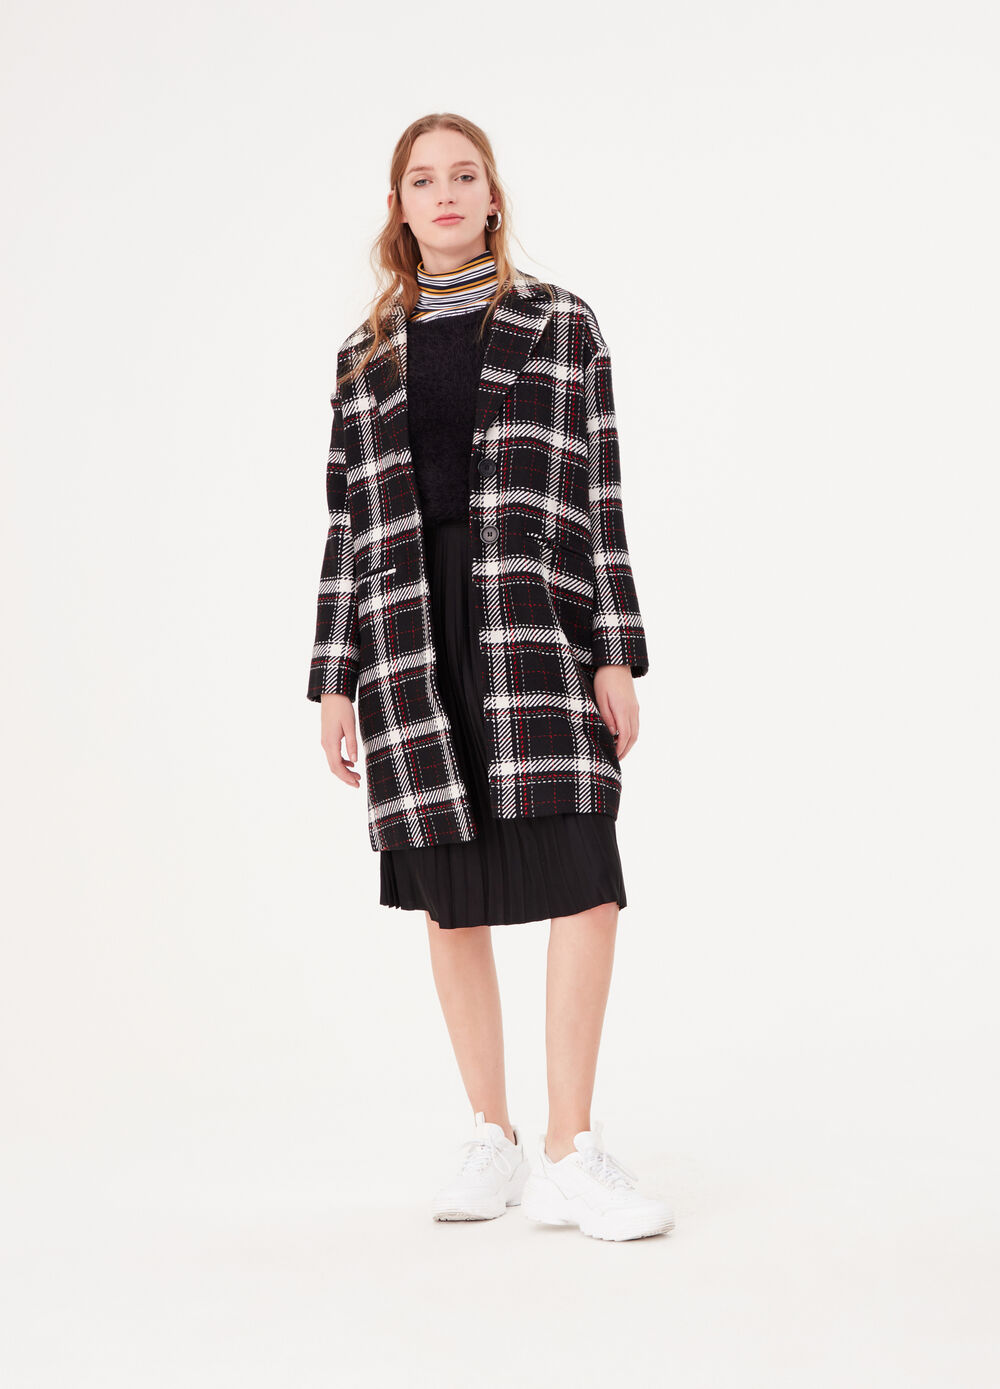 Coat with pockets and tartan pattern